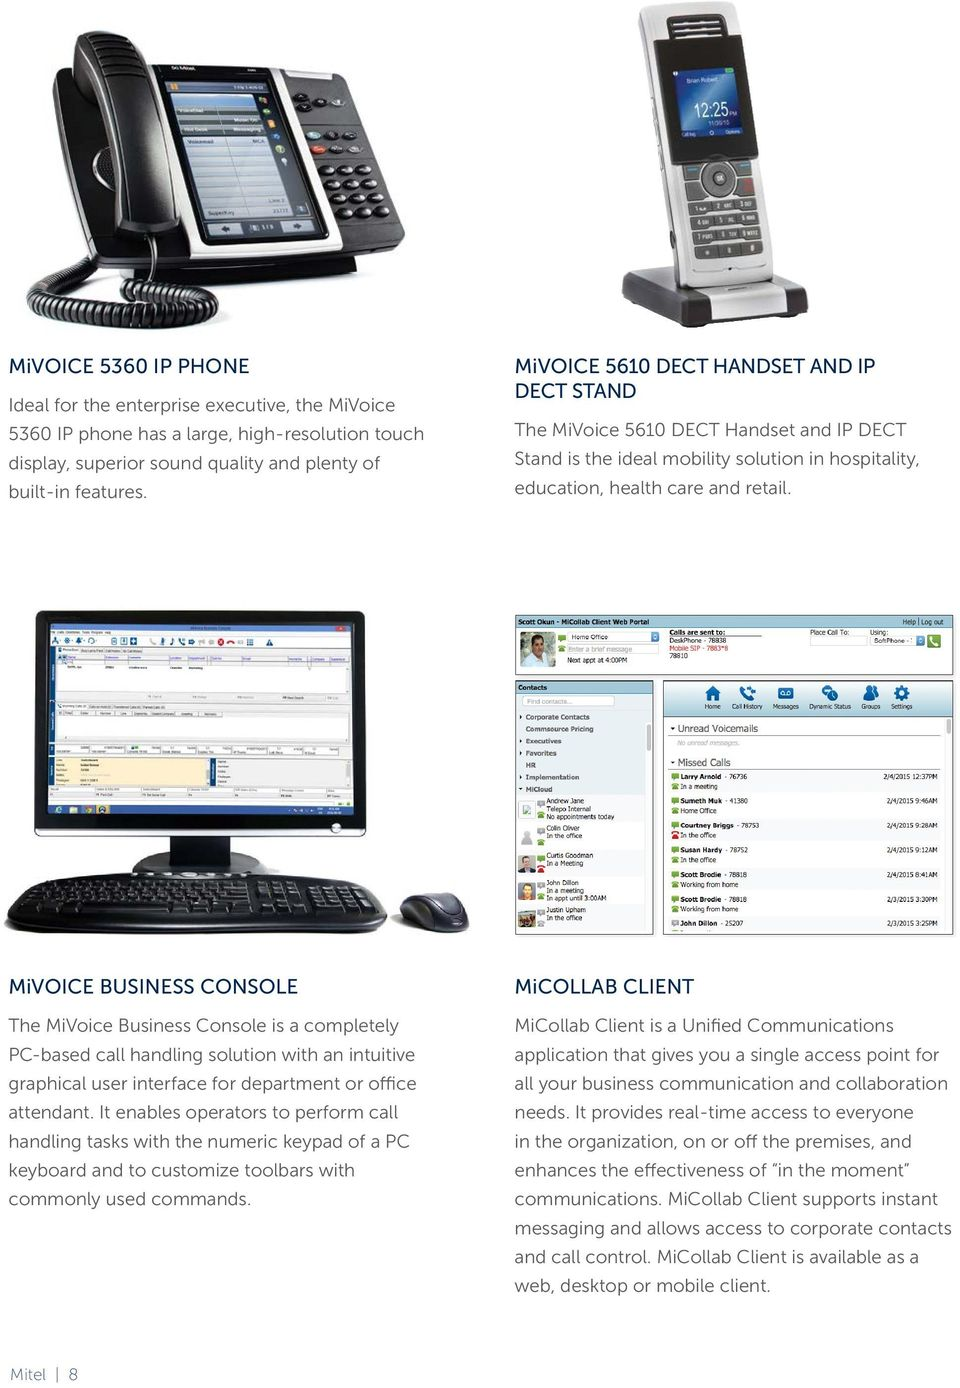 MiVOICE BUSINESS CONSOLE The MiVoice Business Console is a completely PC-based call handling solution with an intuitive graphical user interface for department or office attendant.